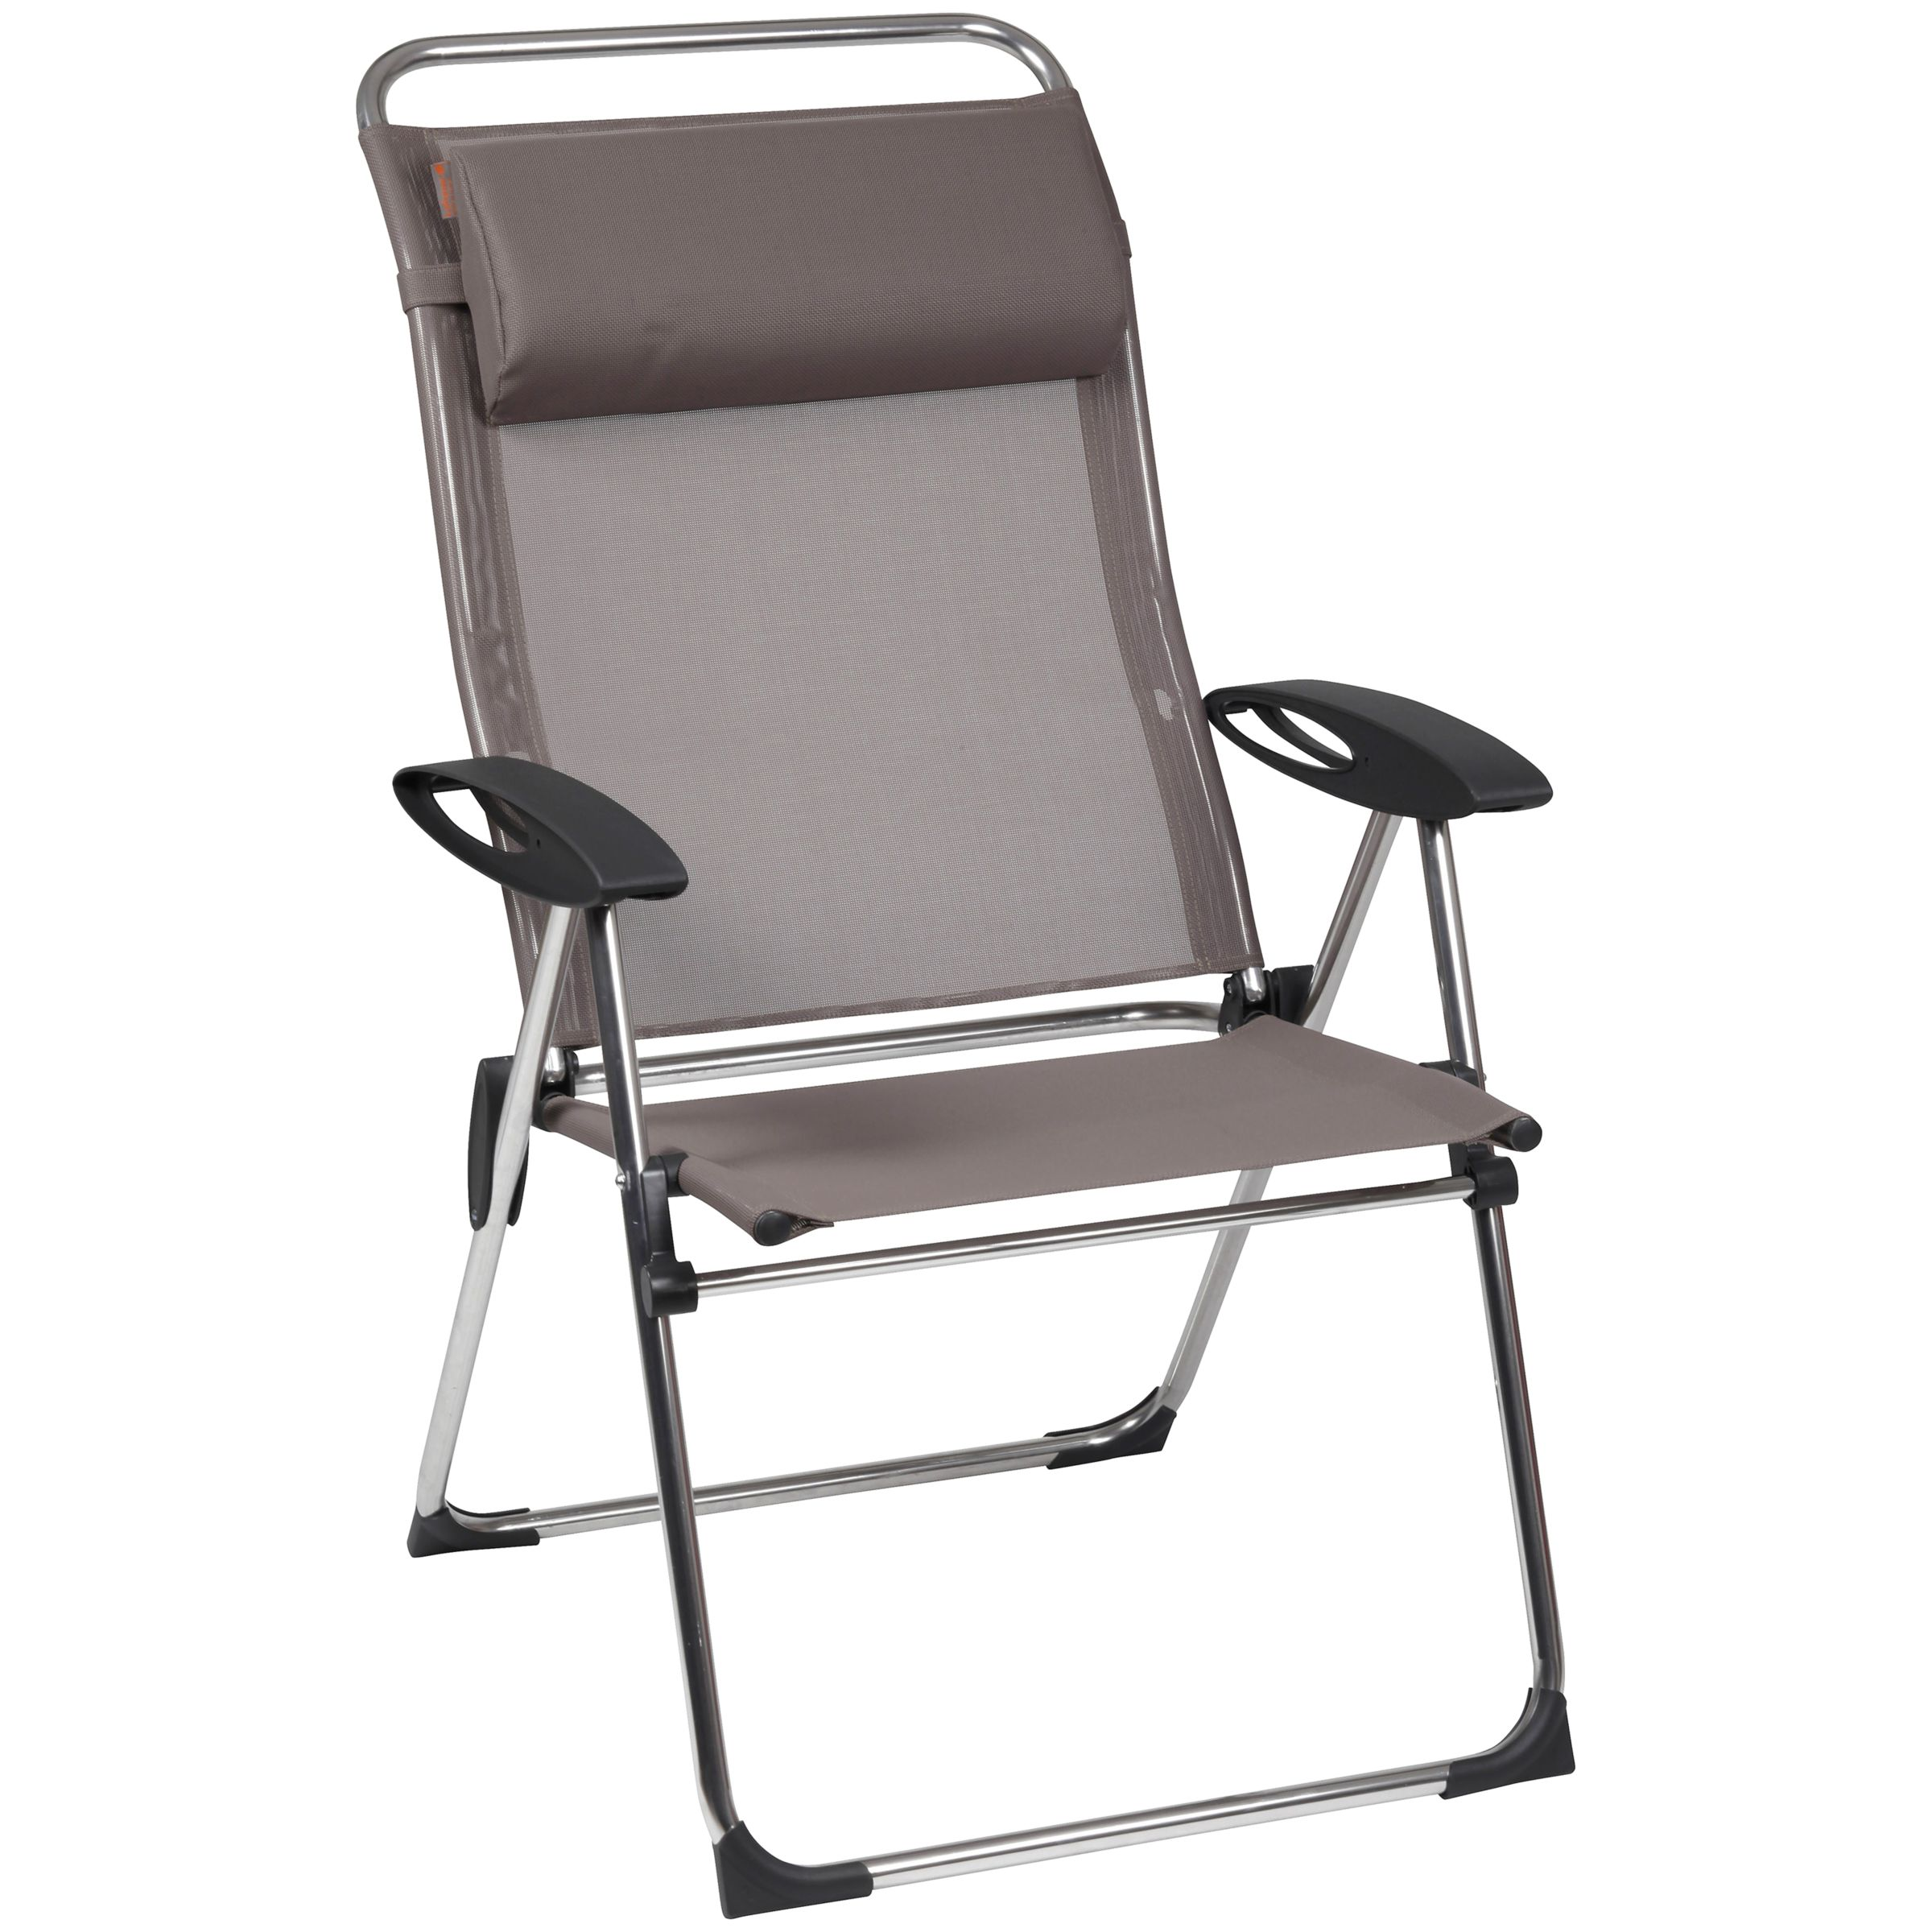 Lafuma Cham Elips XL Outdoor Recliner Chair, Ecorce